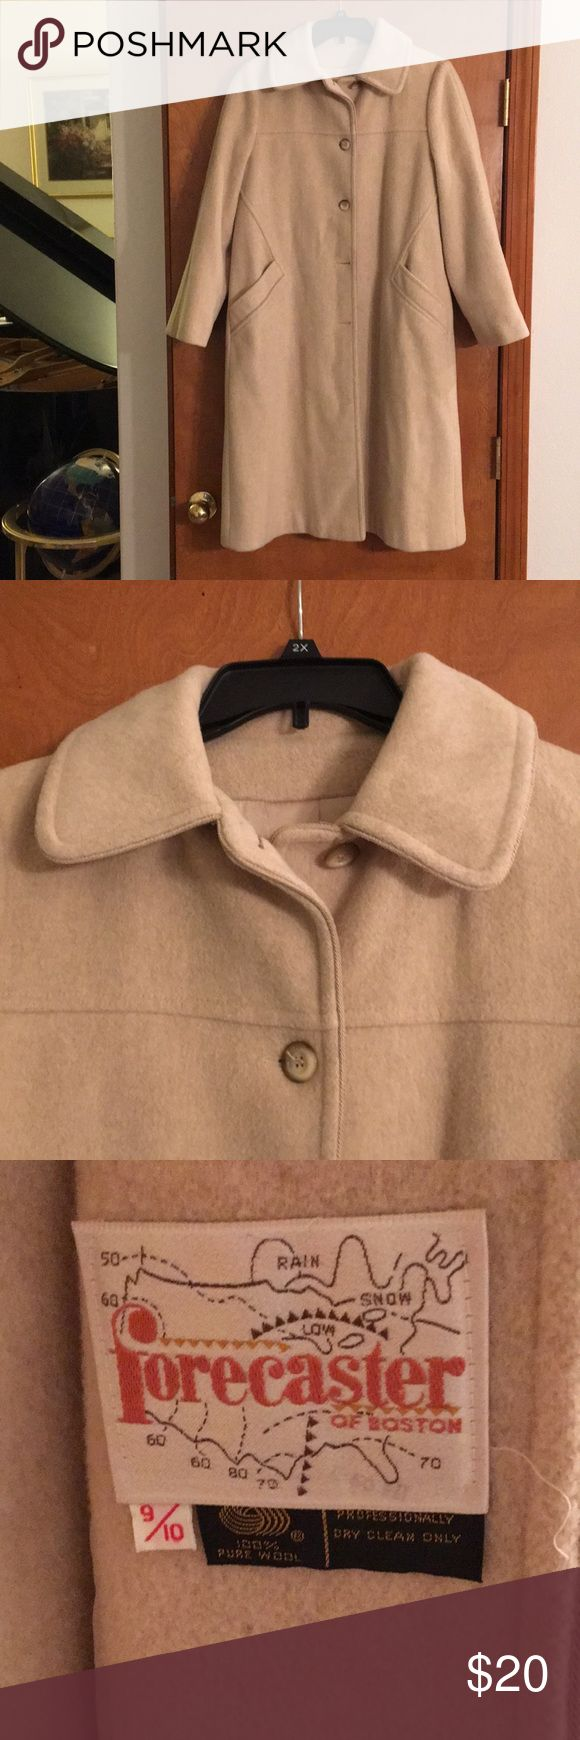 100% Wool Winter Coat Forecaster of Boston cream colored wool coat.  Vintage, probably from late 70s.  In very good shape, very clean.  Fully lined  Size 9/10 Forecaster of Boston Jackets & Coats Trench Coats